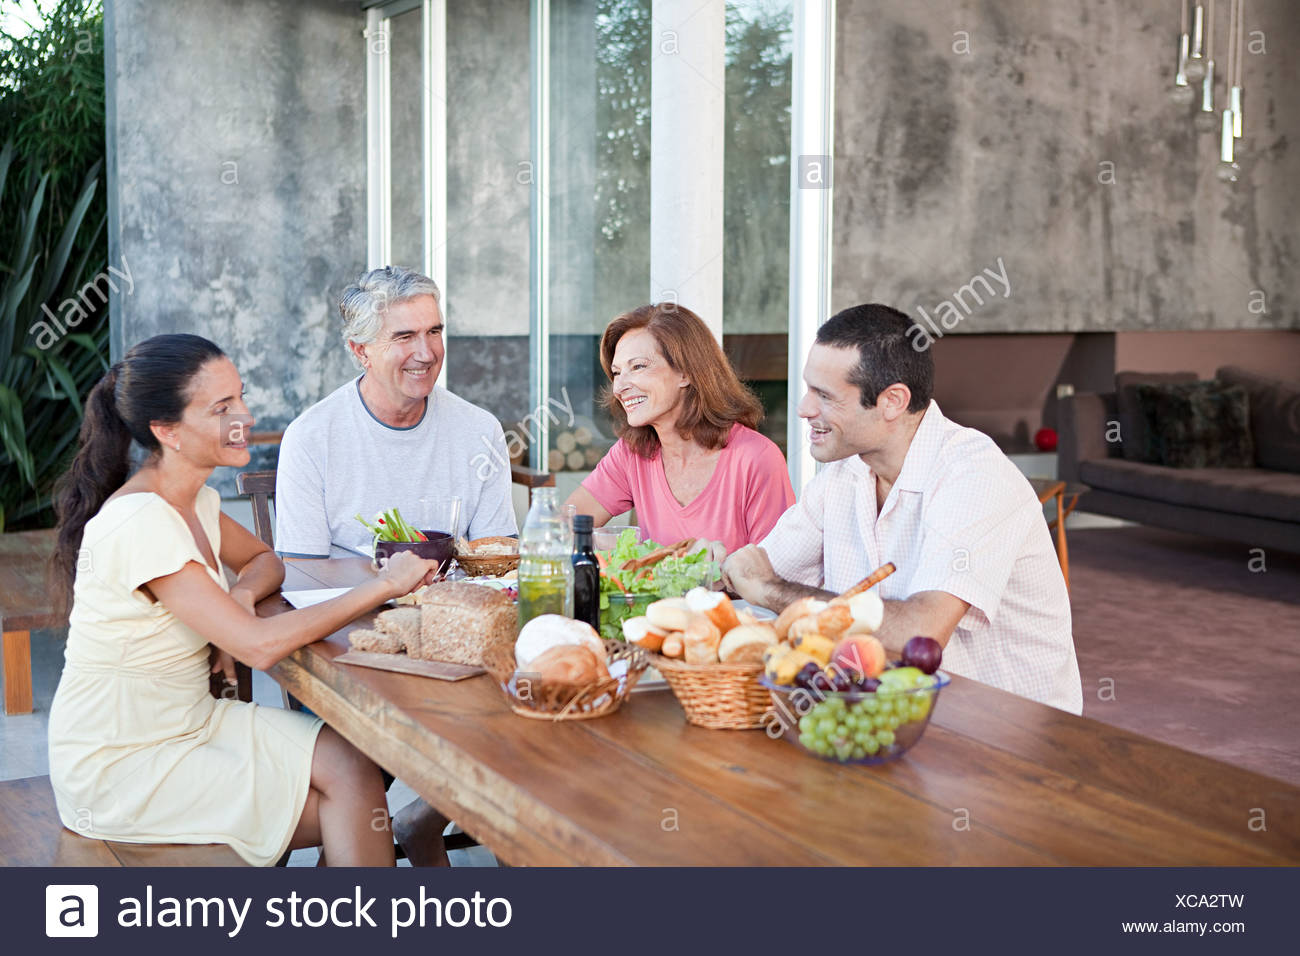 Adult family members at table outdoors - Stock Image